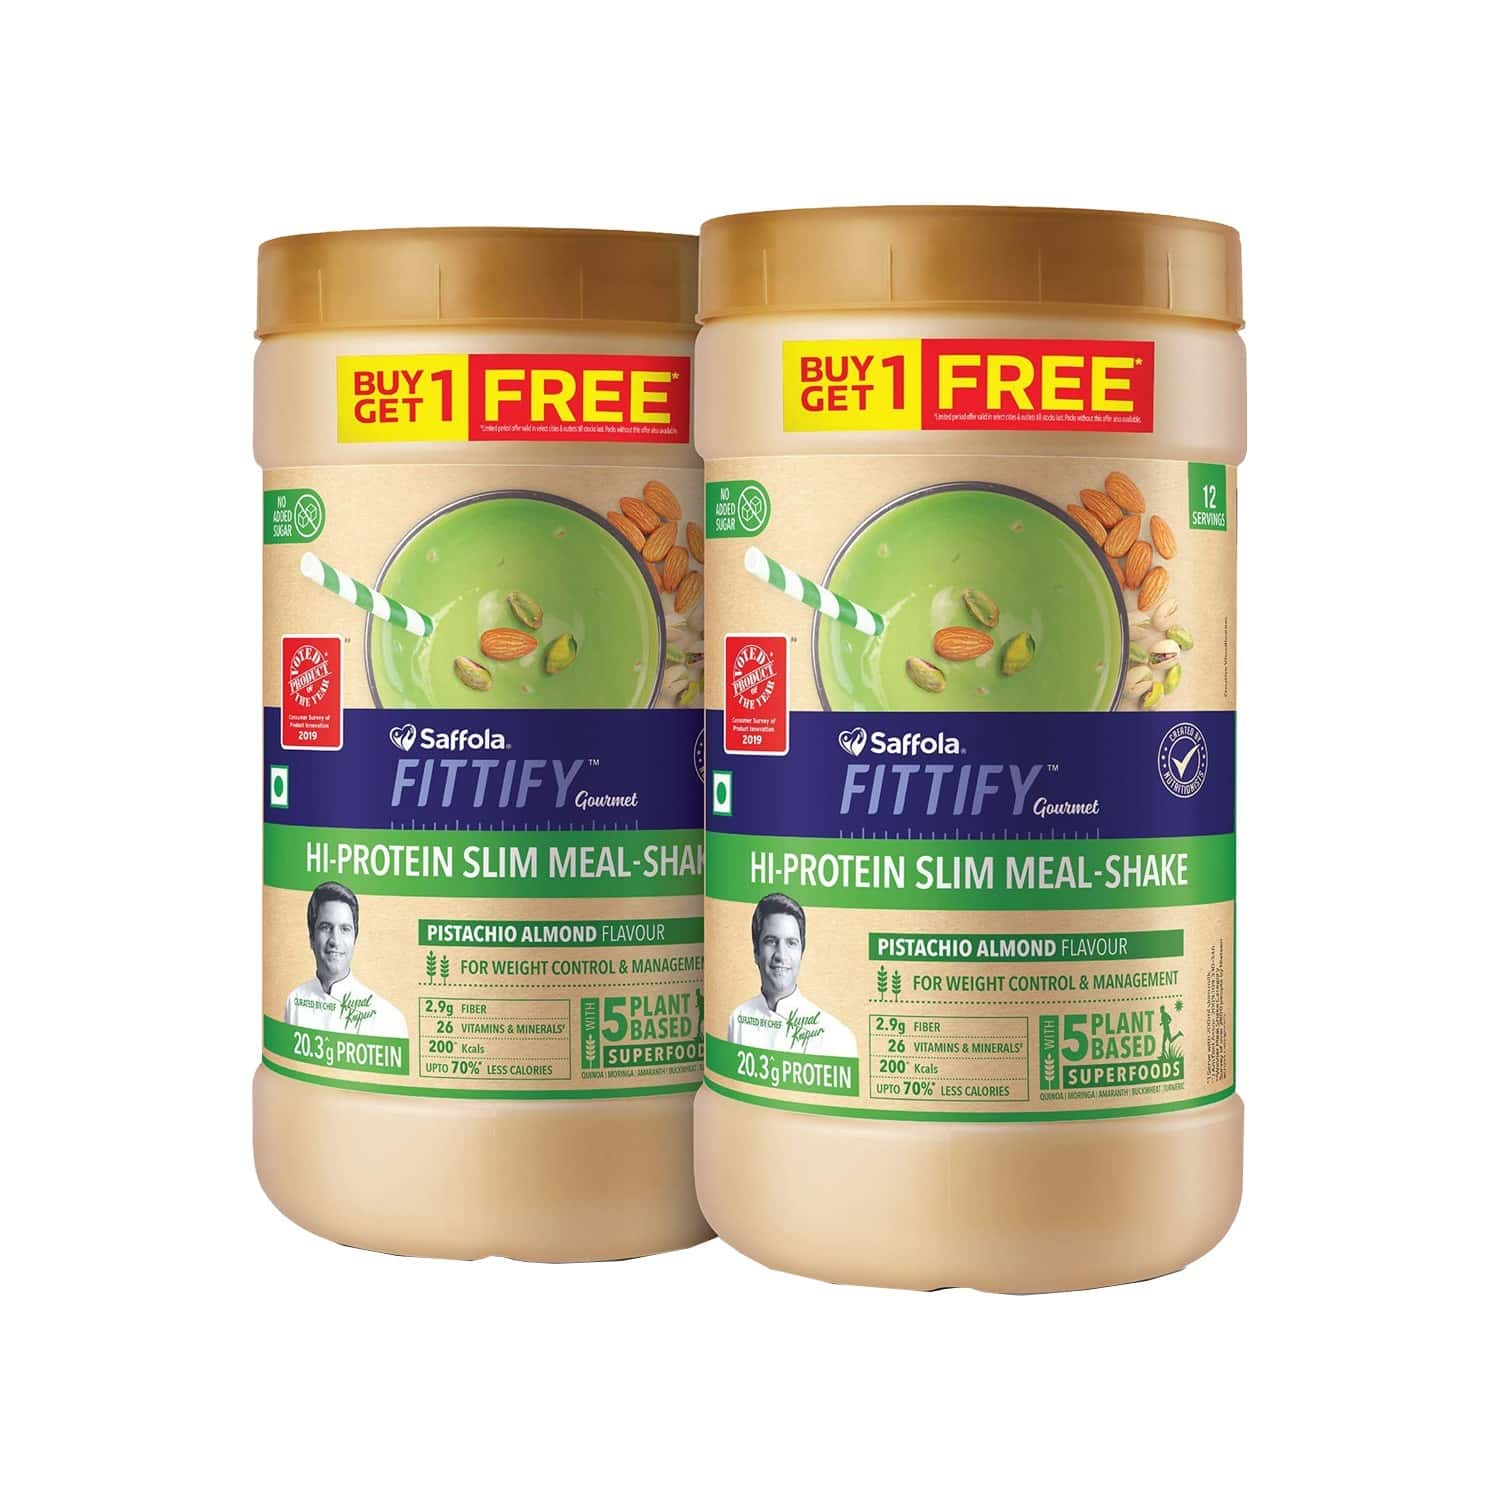 Saffola Fittify Hi-protein Slim Meal Shake, Pistachio Almond, Buy 1 Get 1, Each Pack 420 Gm